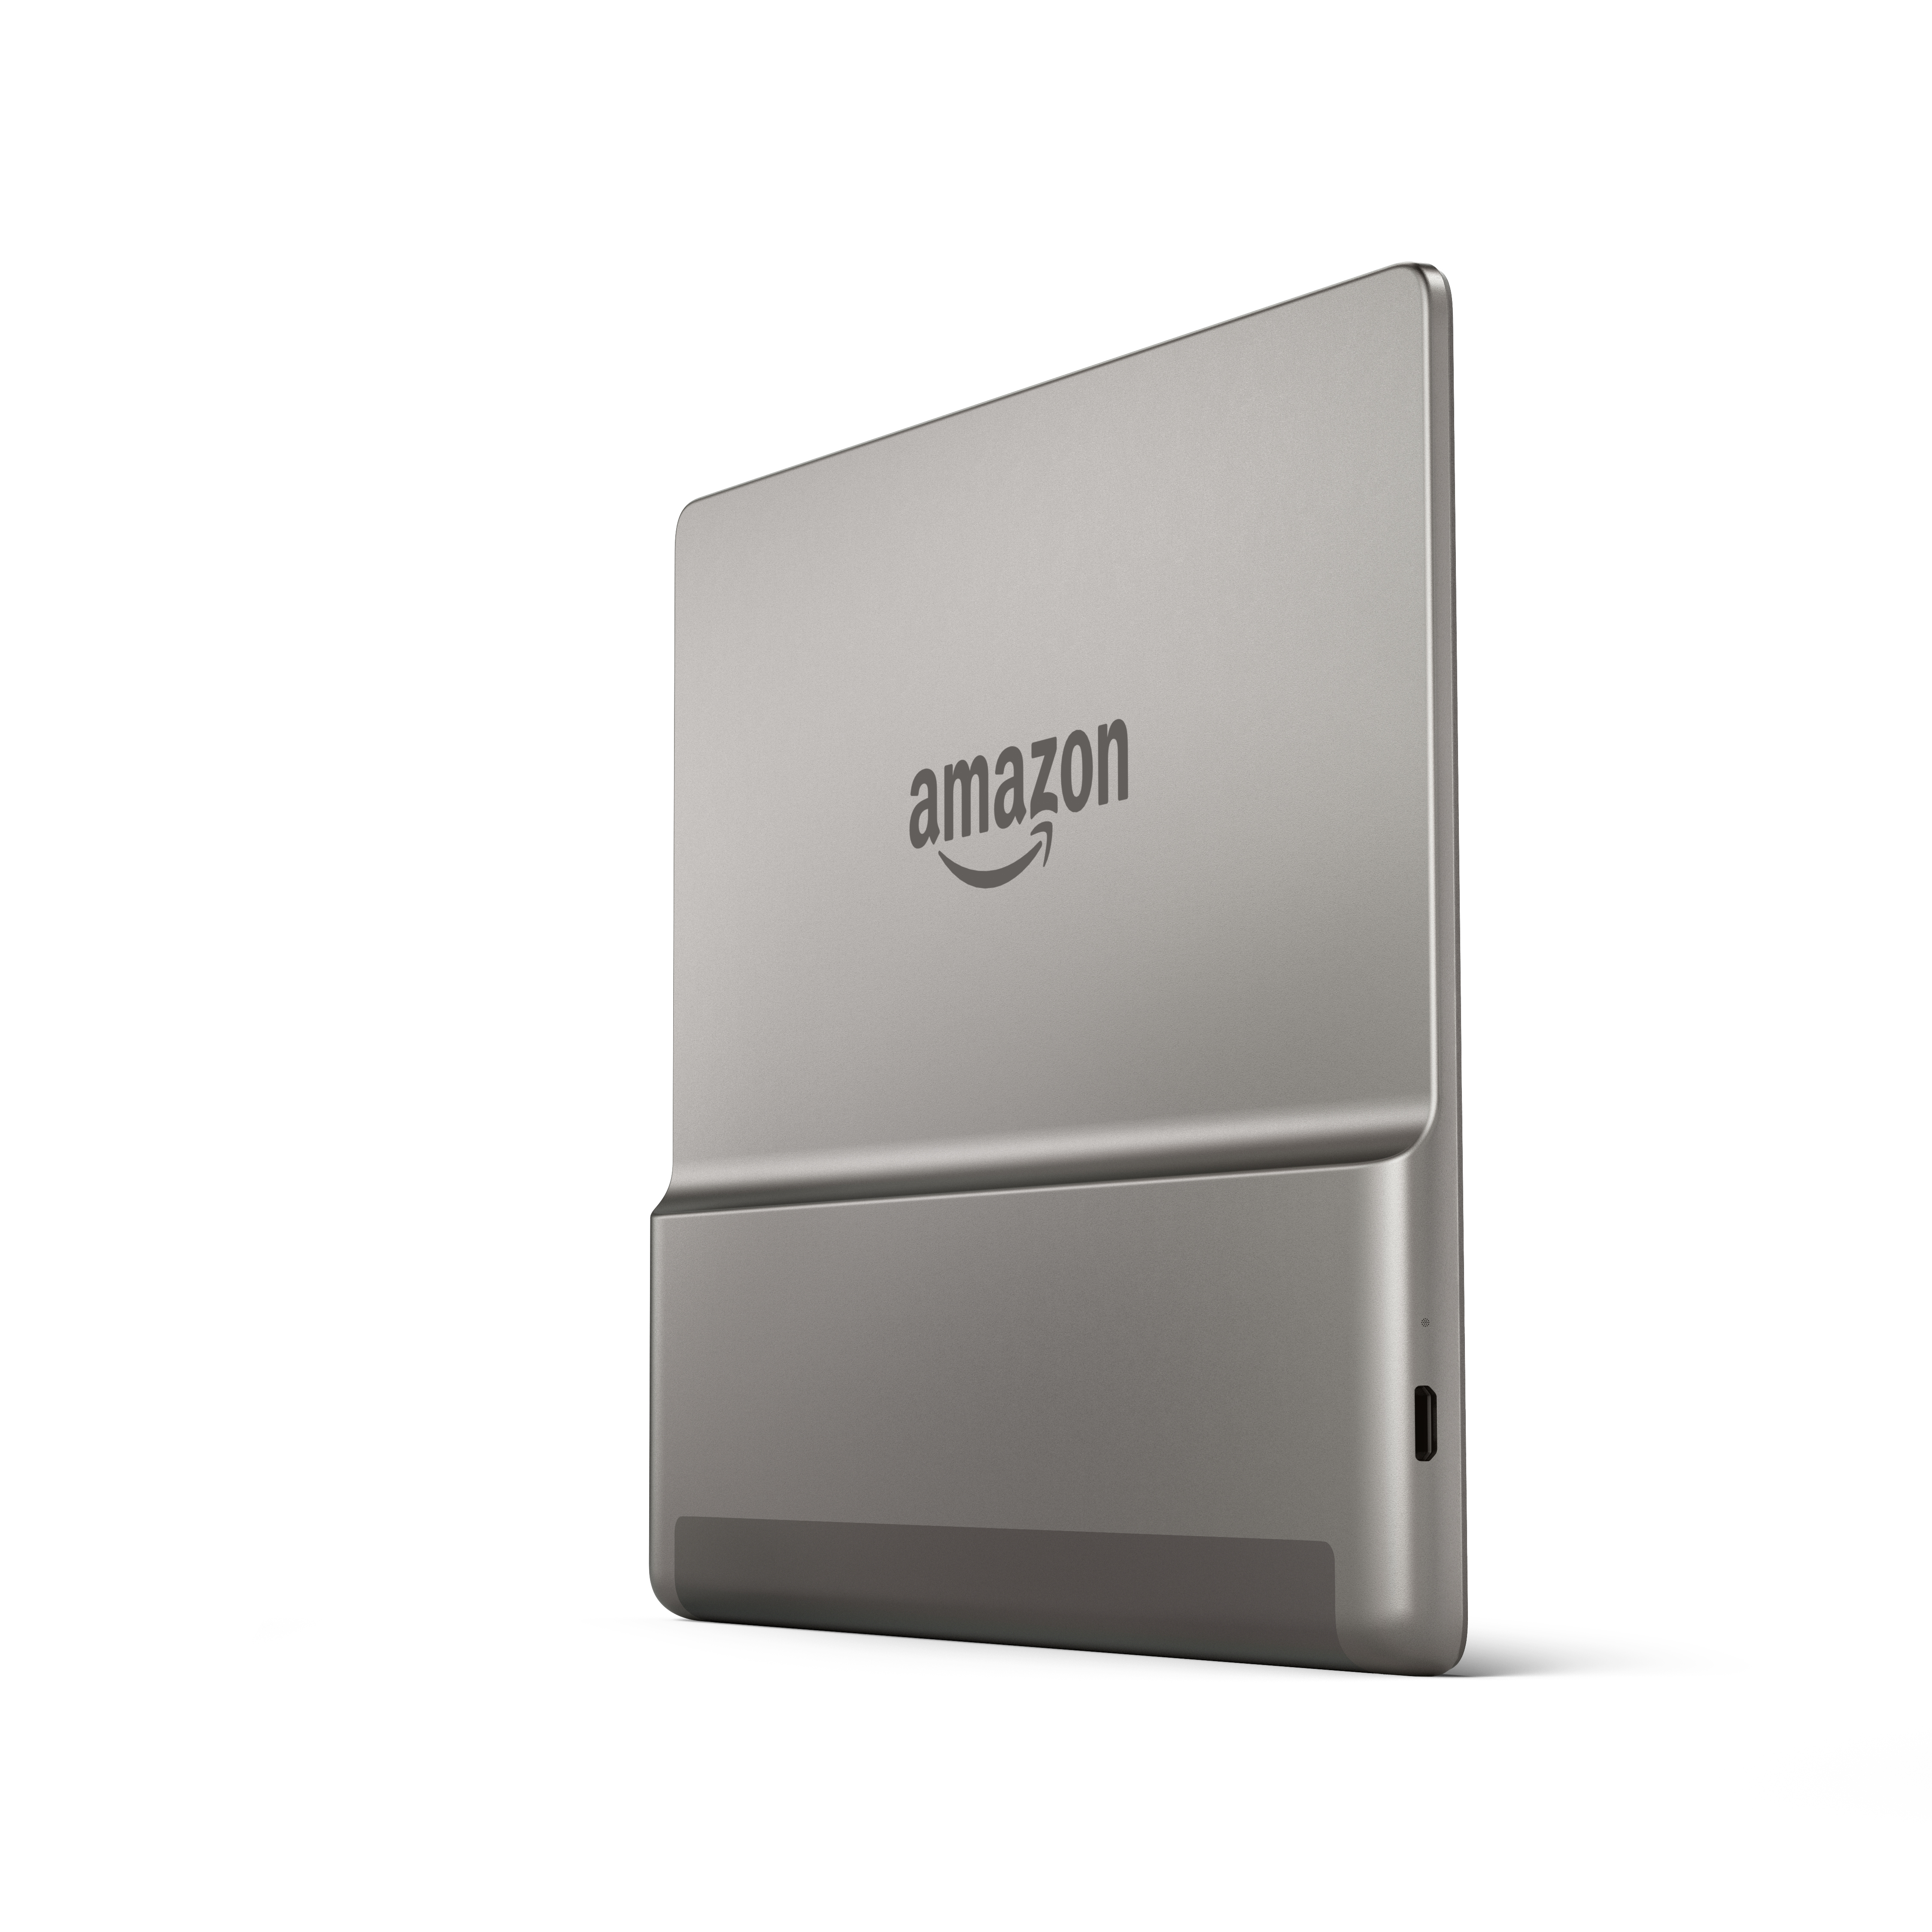 Meet the All-New Kindle Oasis: Featuring a 7-inch, 300 ppi